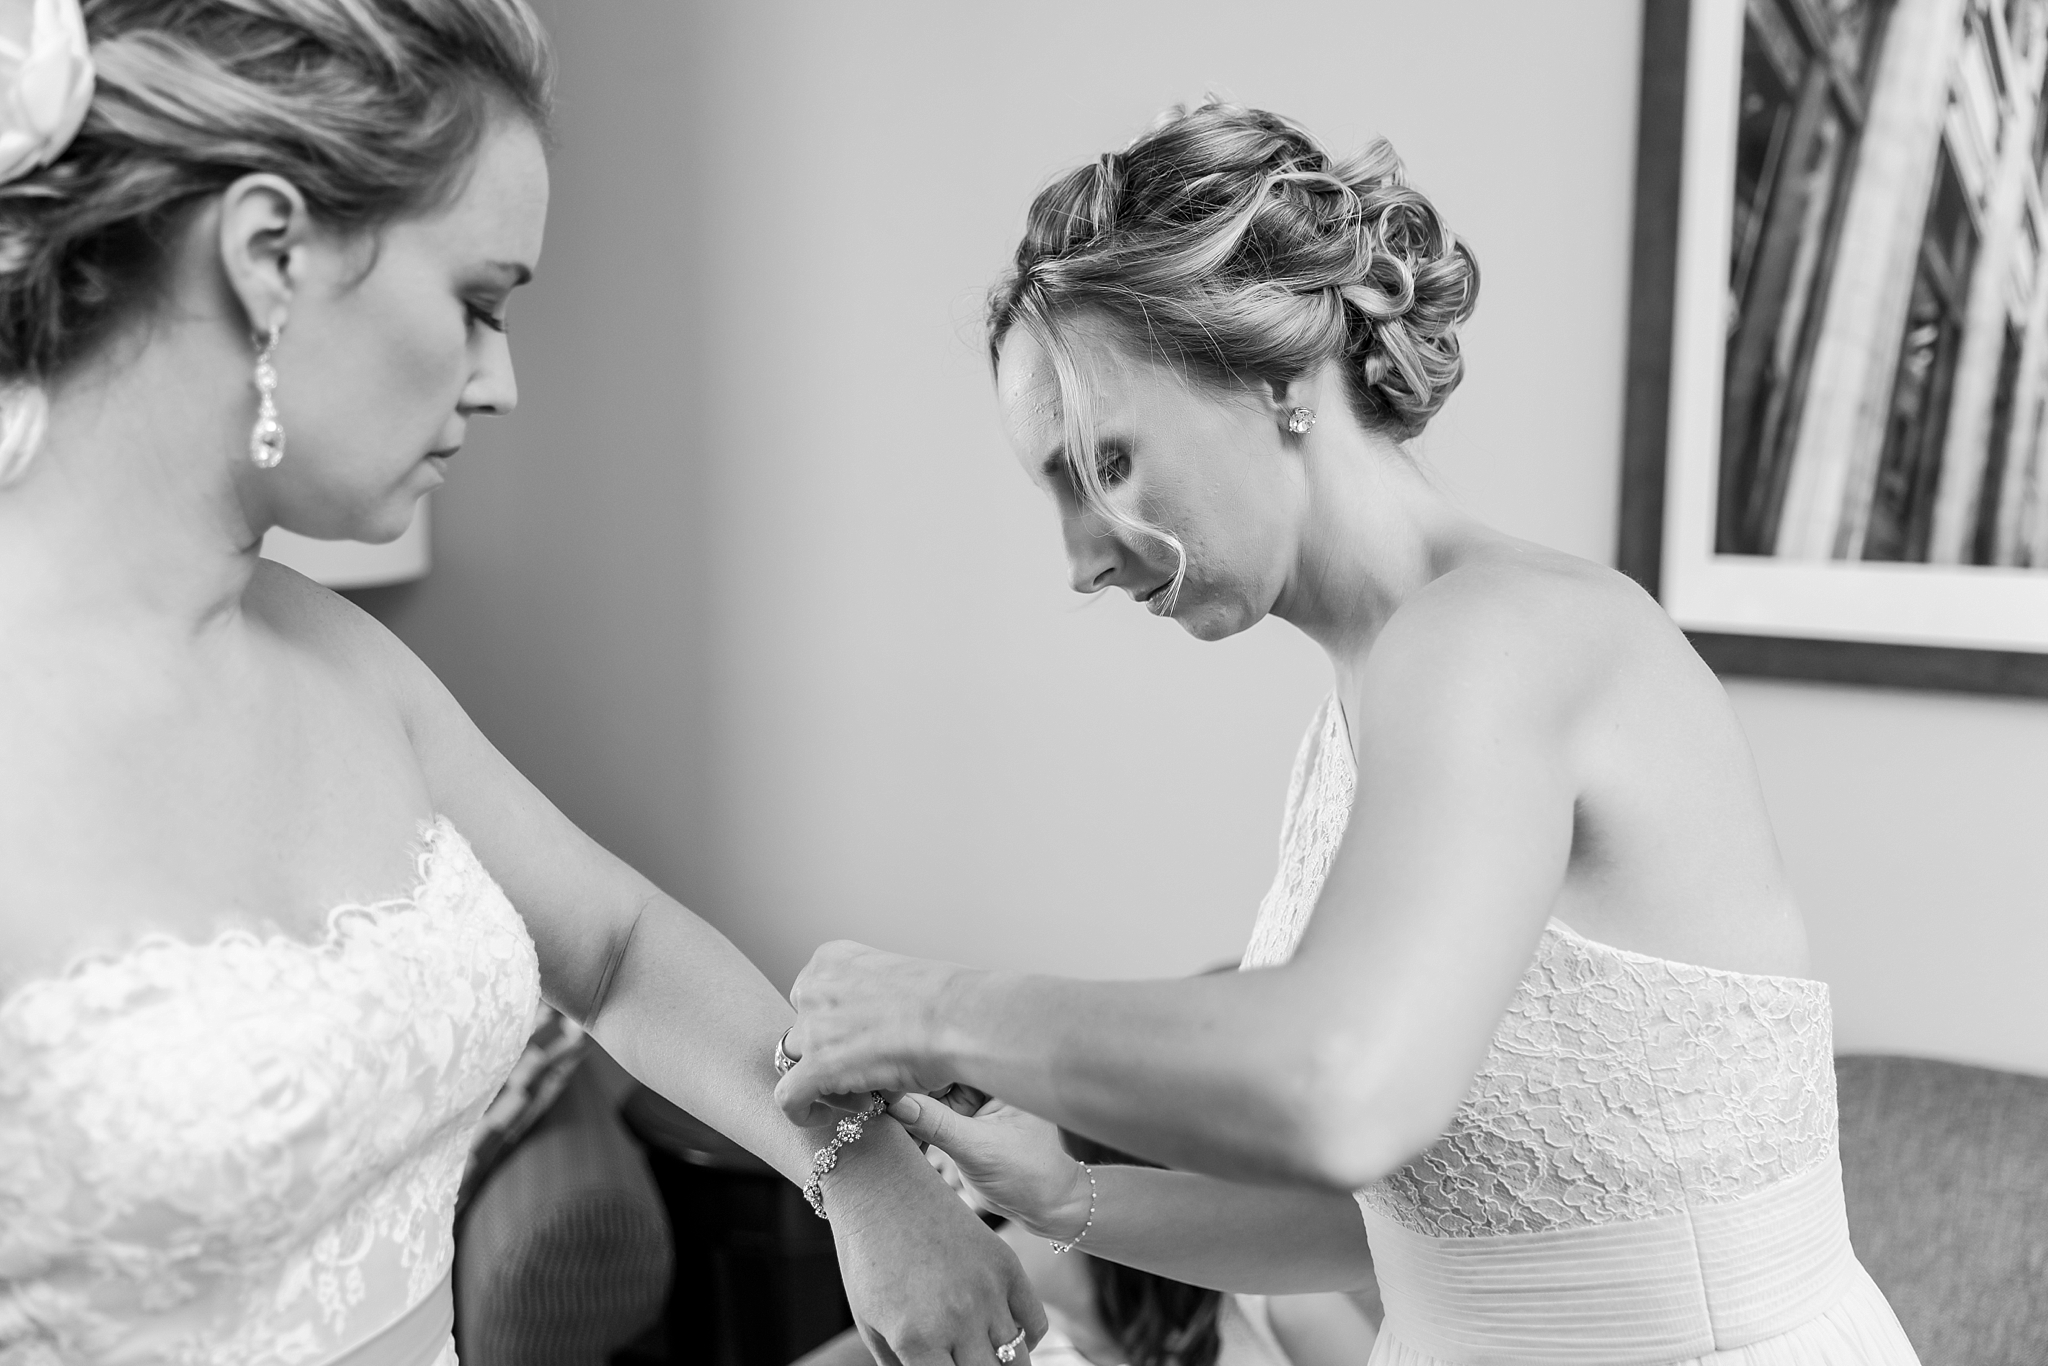 fun-candid-laid-back-wedding-photos-at-wellers-carriage-house-in-saline-michigan-and-at-the-eagle-crest-golf-resort-by-courtney-carolyn-photography_0014.jpg